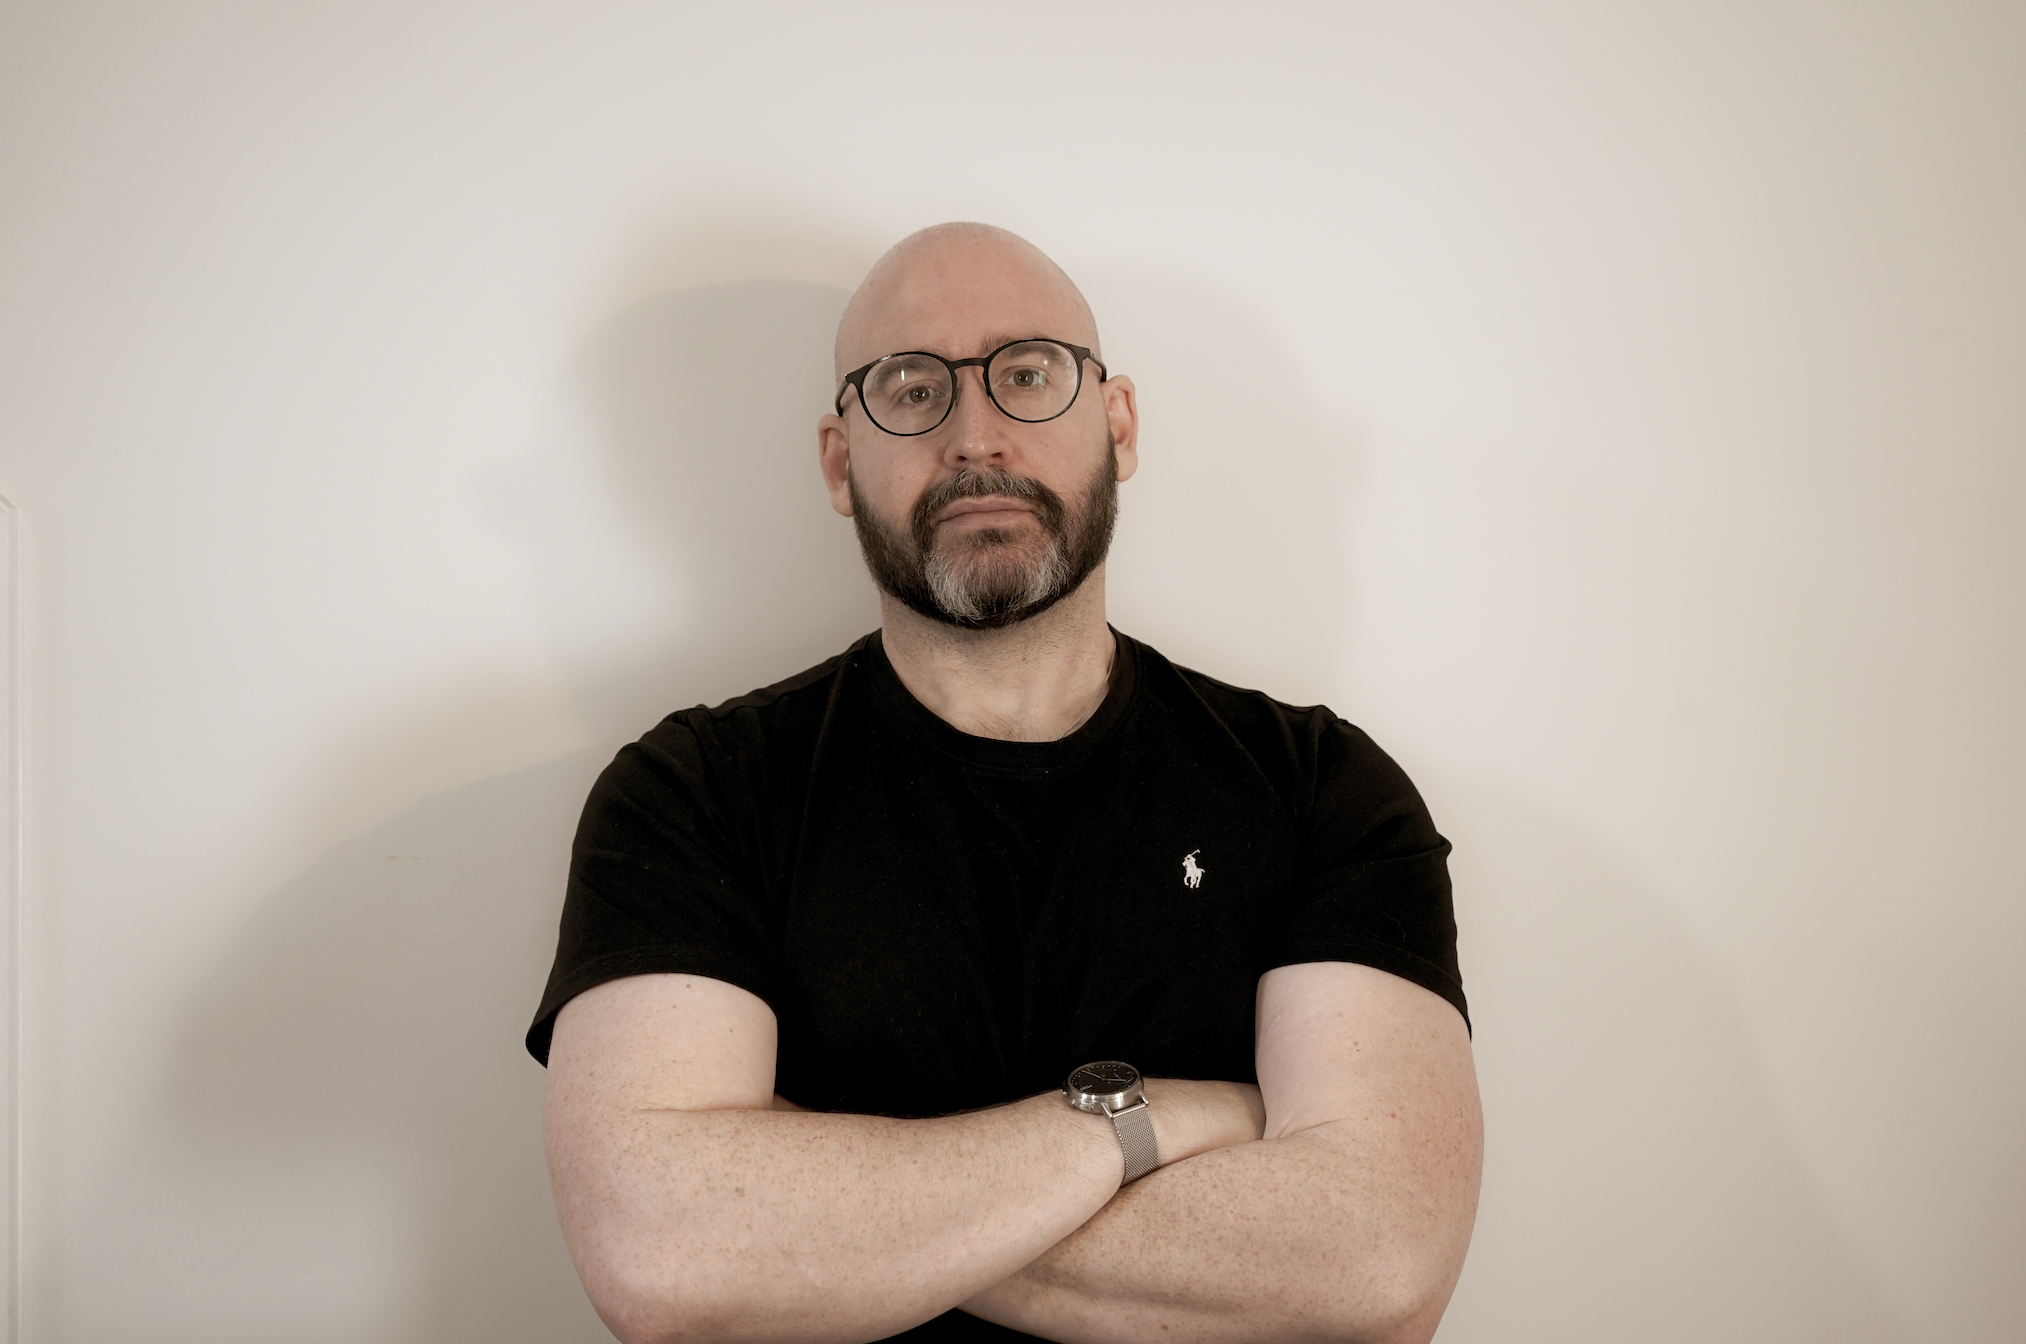 A bald white man with a short, neat beard and glasses looks into the camera. He is unsmiling and has his arms crossed. He wears a black shirt and is standing against a plain beige background.